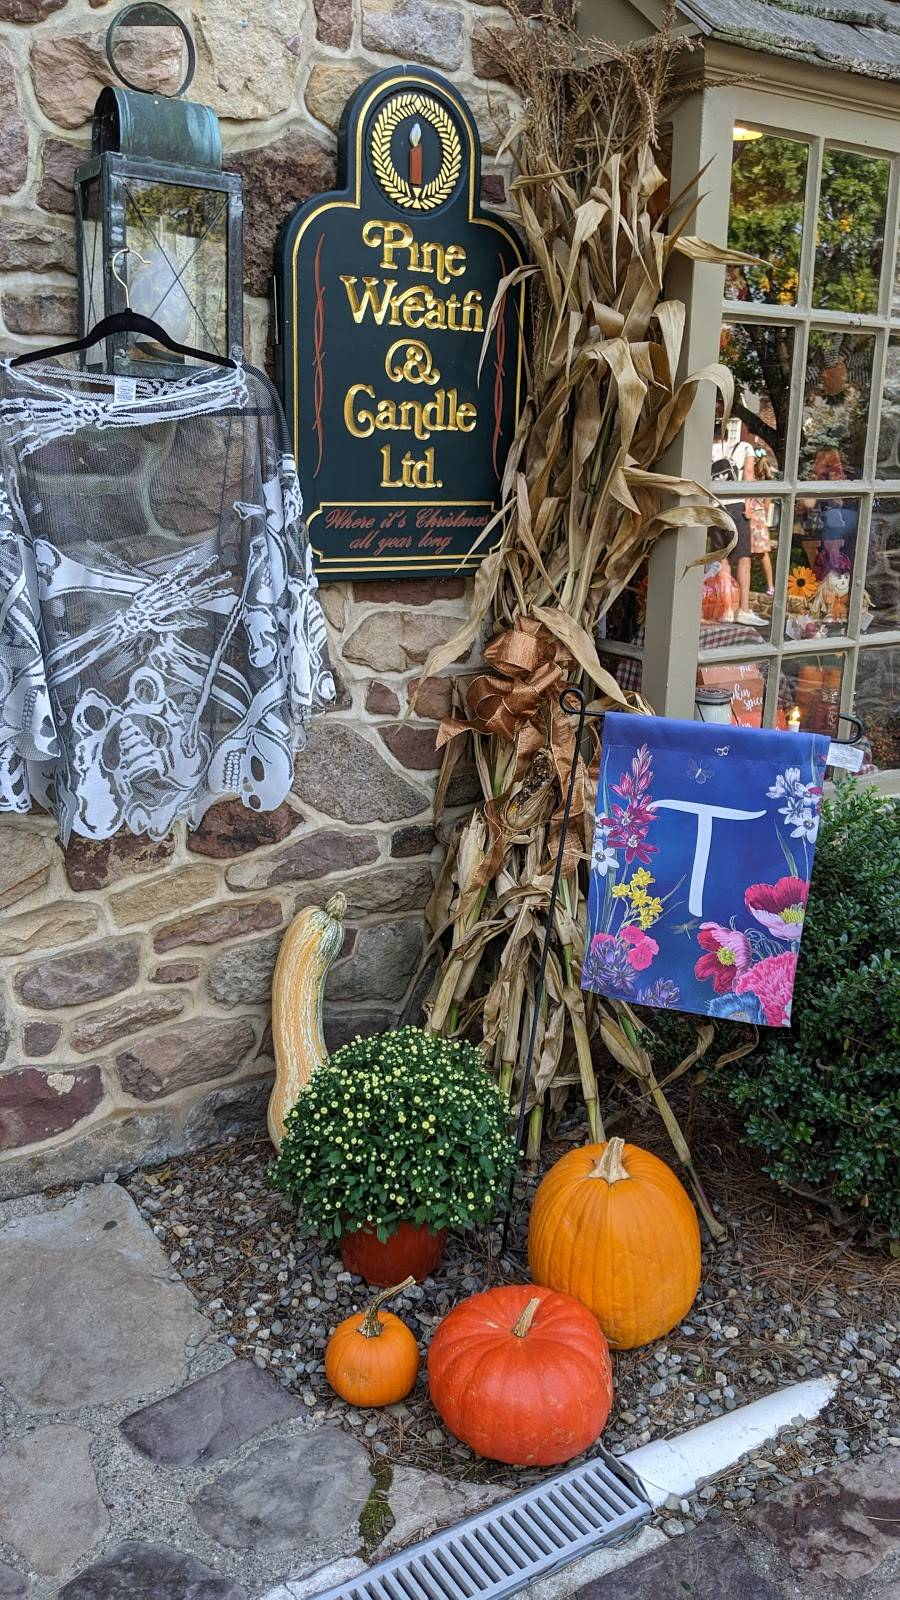 Peddlers Village | shopping mall | 100 Peddlers Village, New Hope, PA 18938, USA | 2157944000 OR +1 215-794-4000